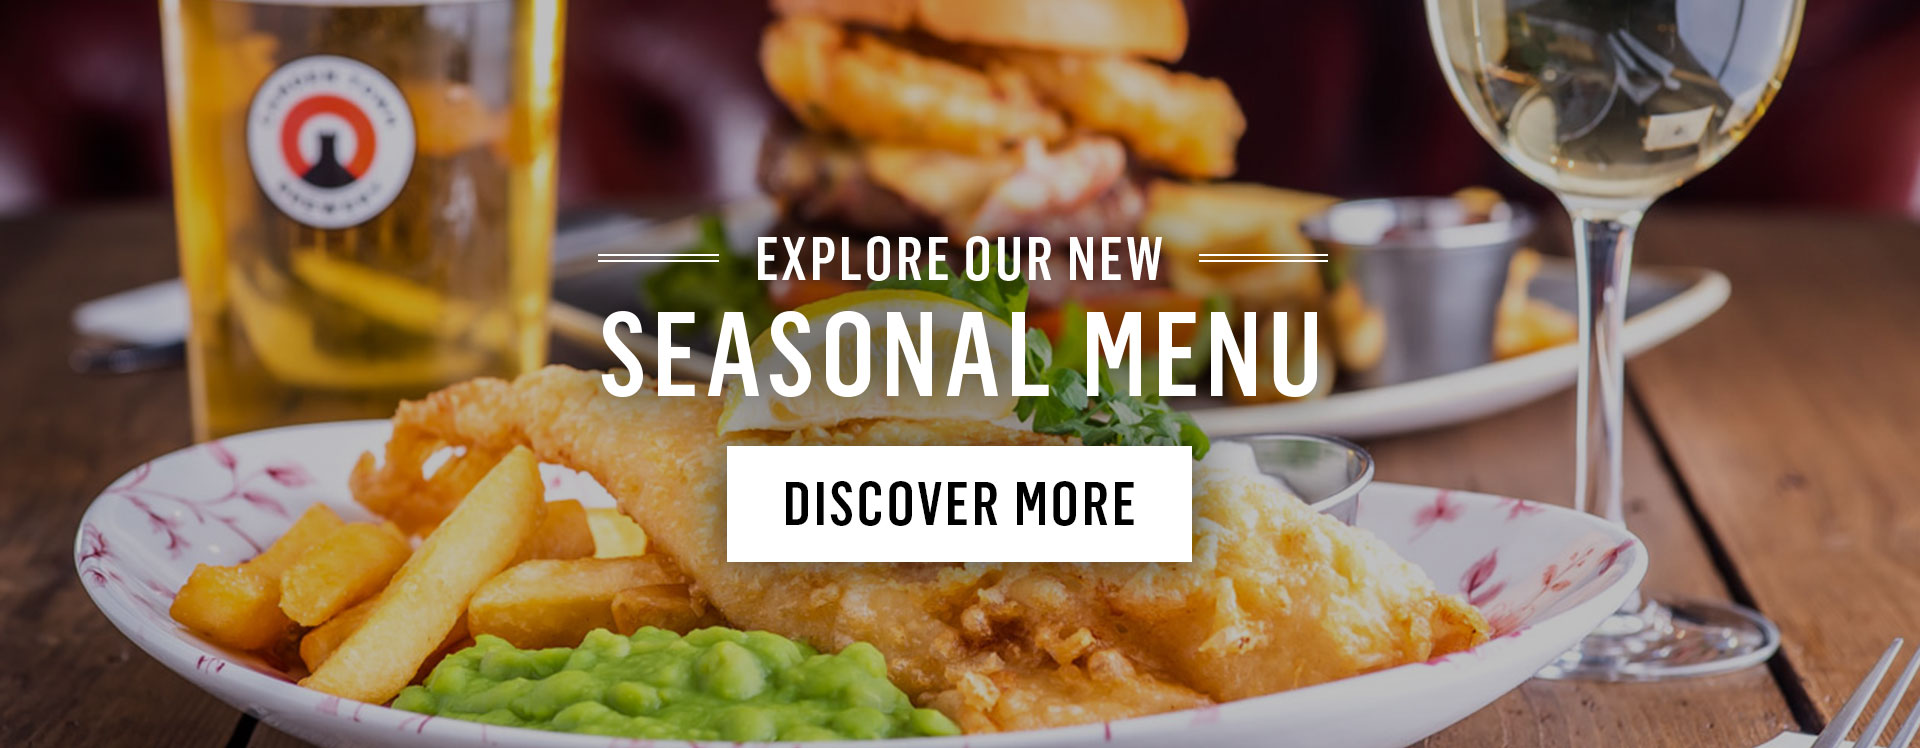 New Menu at The Sawyer's Arms